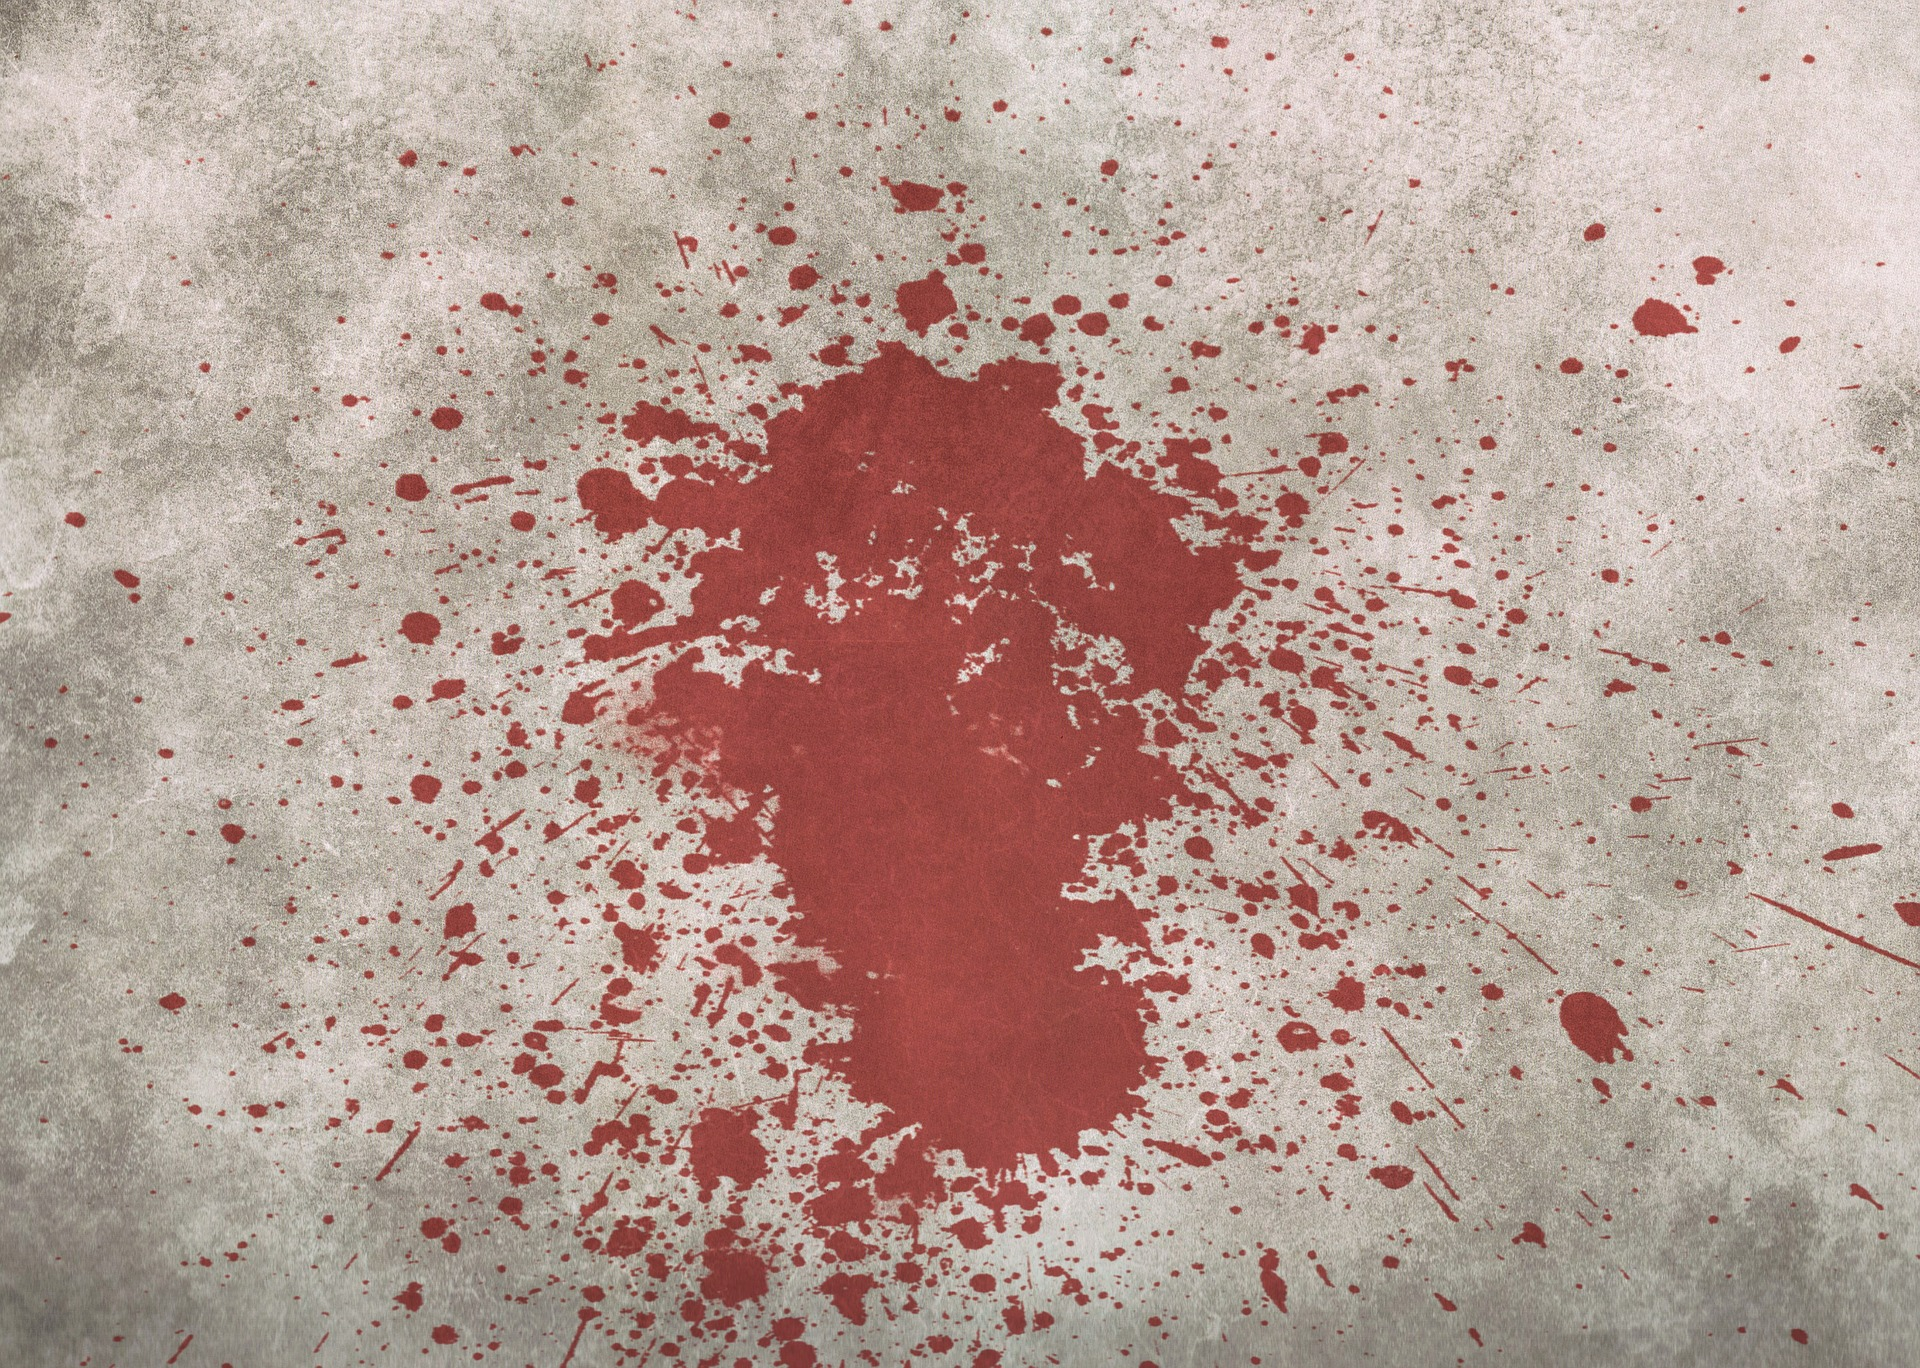 Blood Stain Patterns Simple Ideas